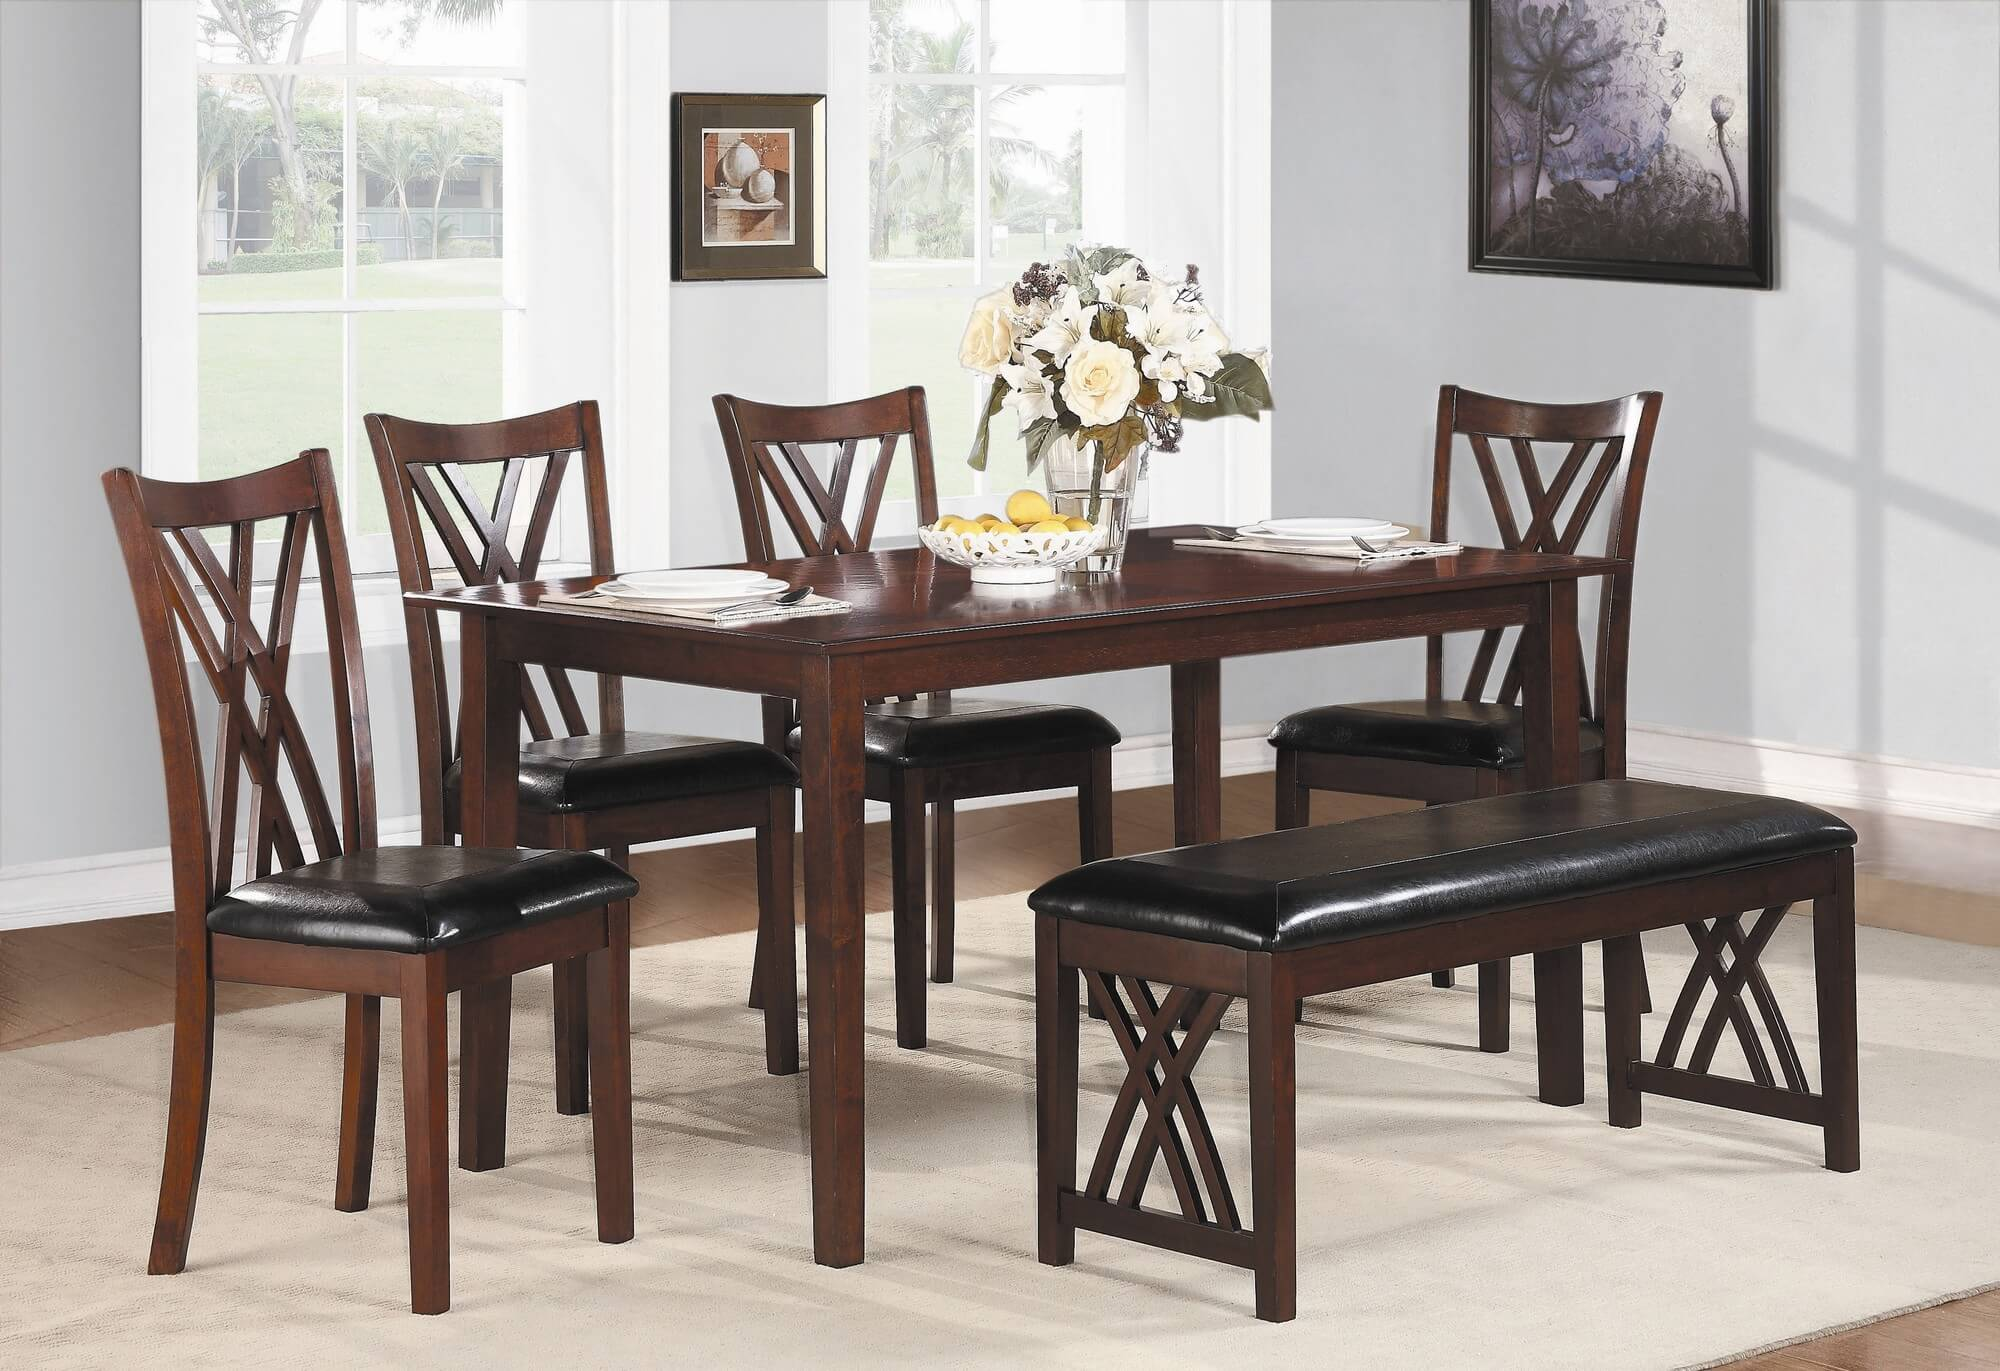 26 big small dining room sets with bench seating - Dining room furniture benches ideas ...